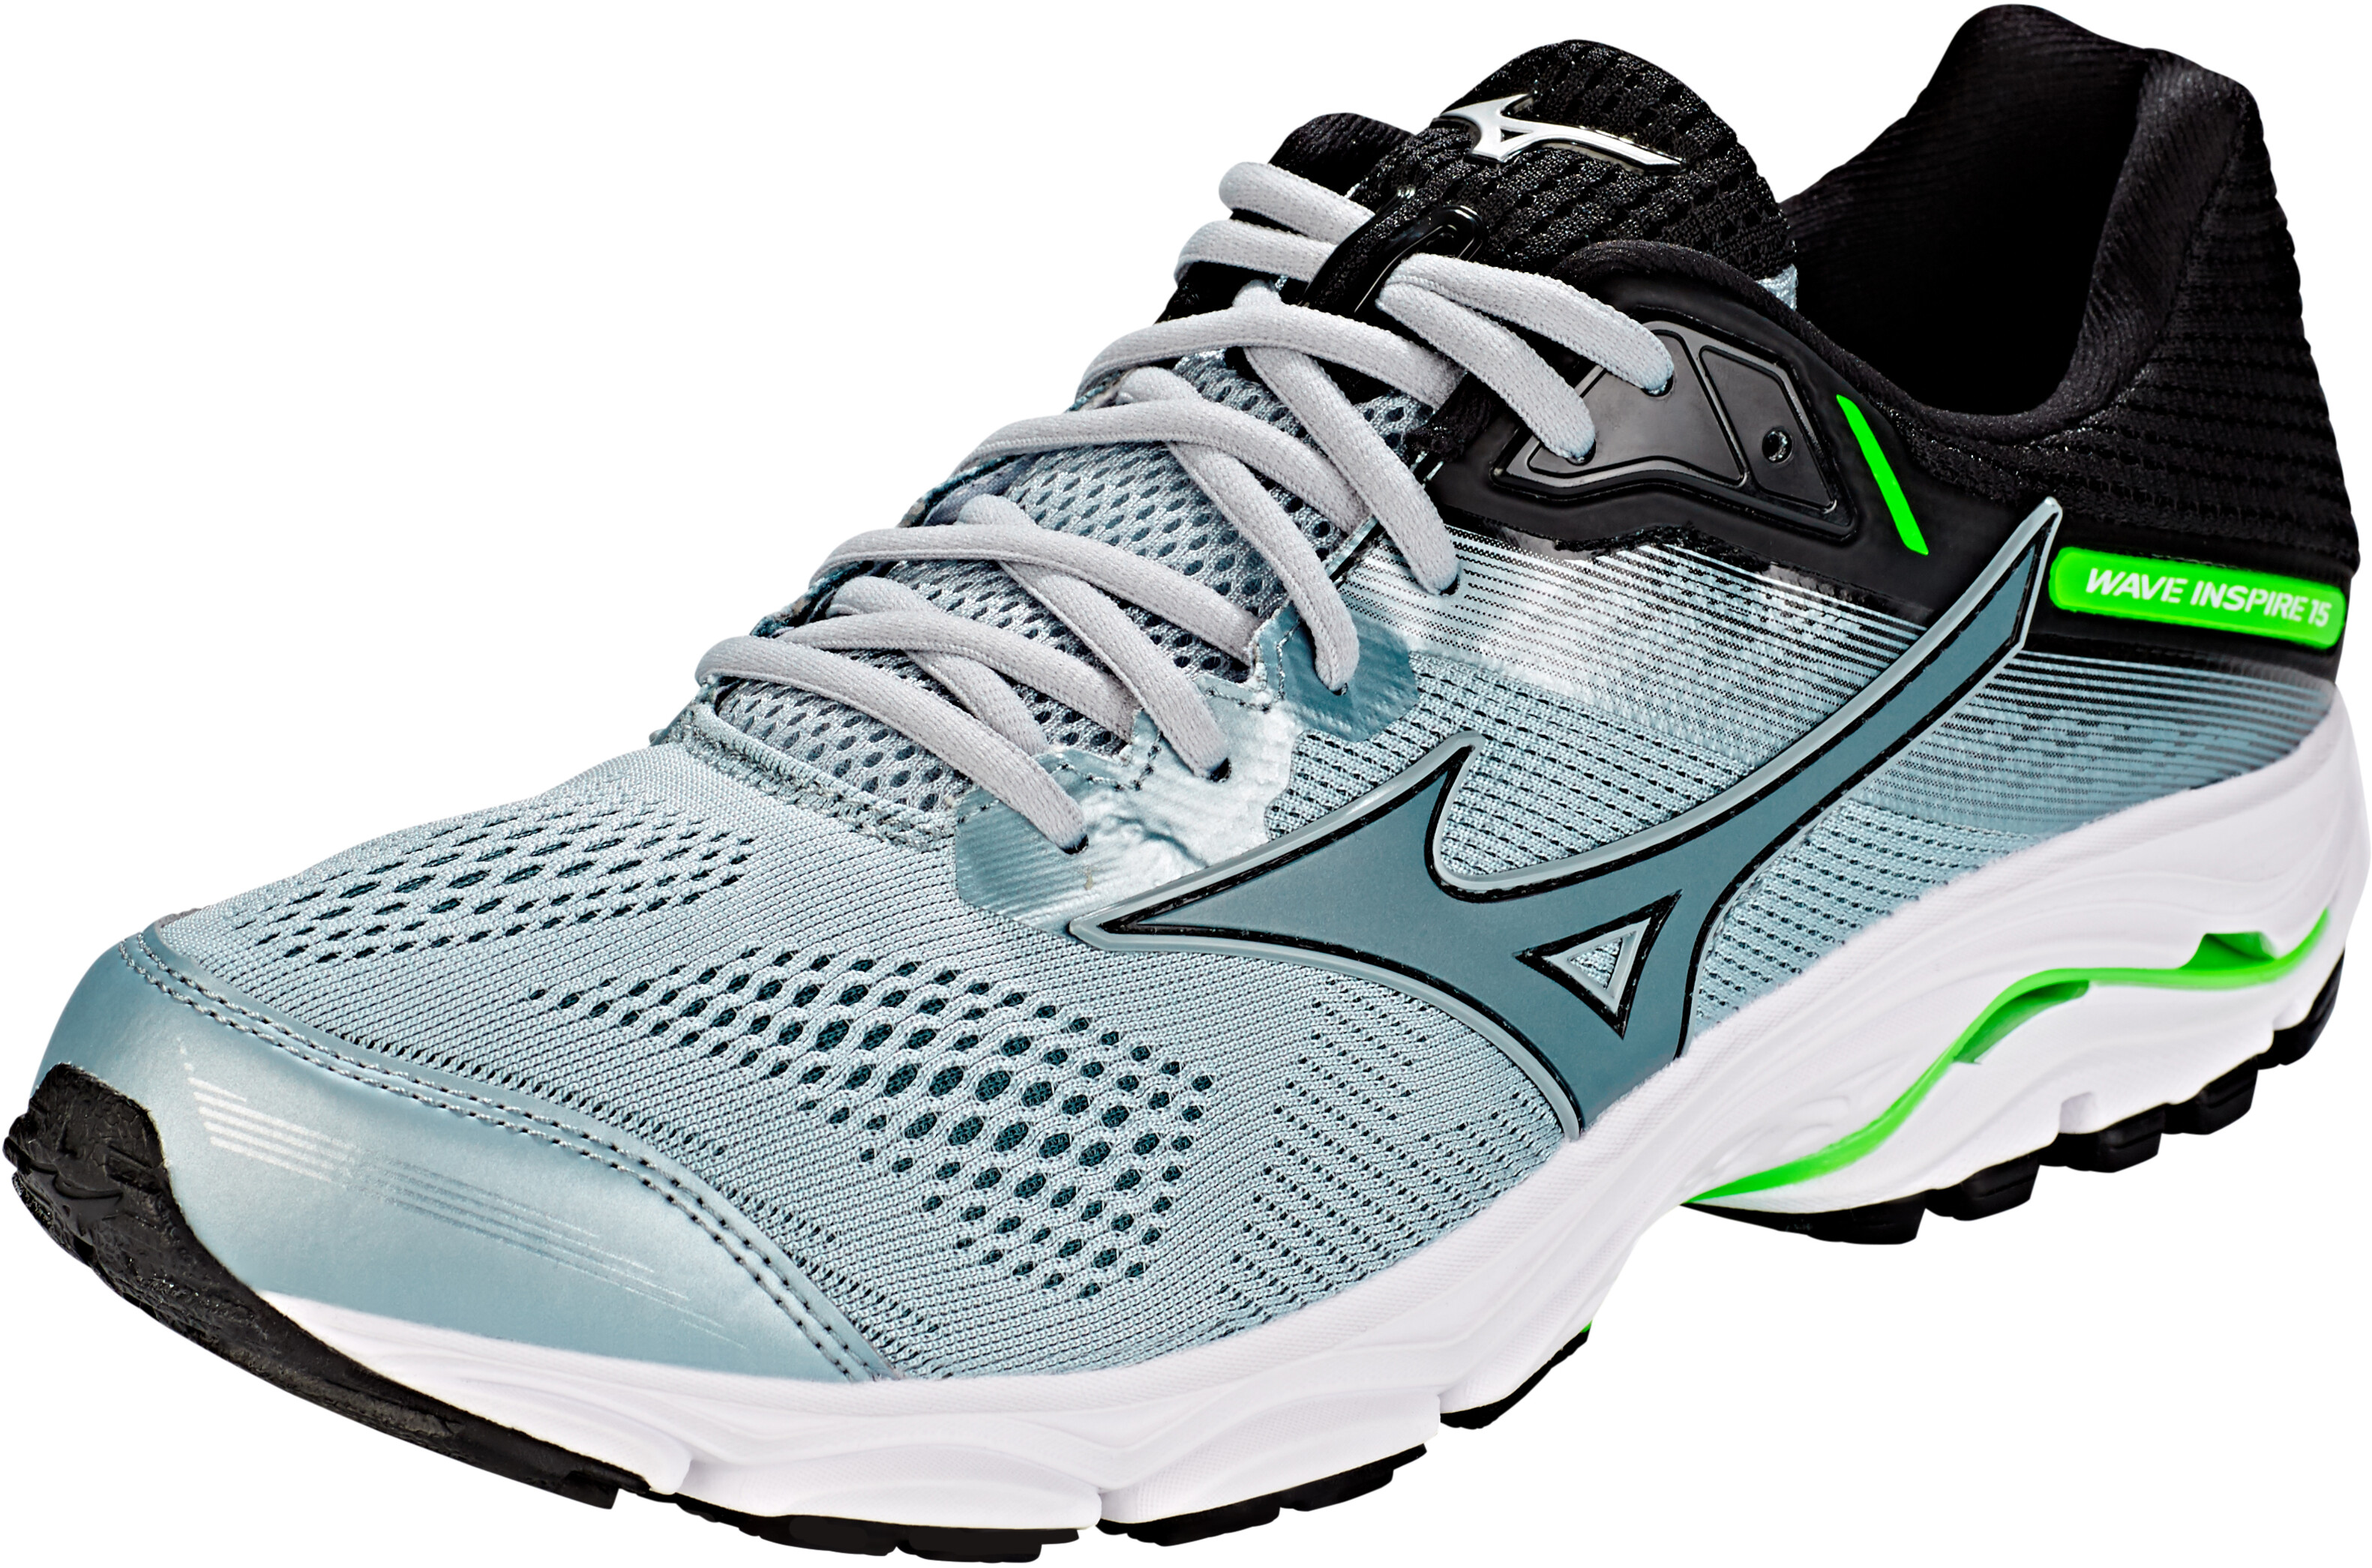 quality design 2e155 126e3 Mizuno Wave Inspire 15 - Chaussures running Homme - gris vert